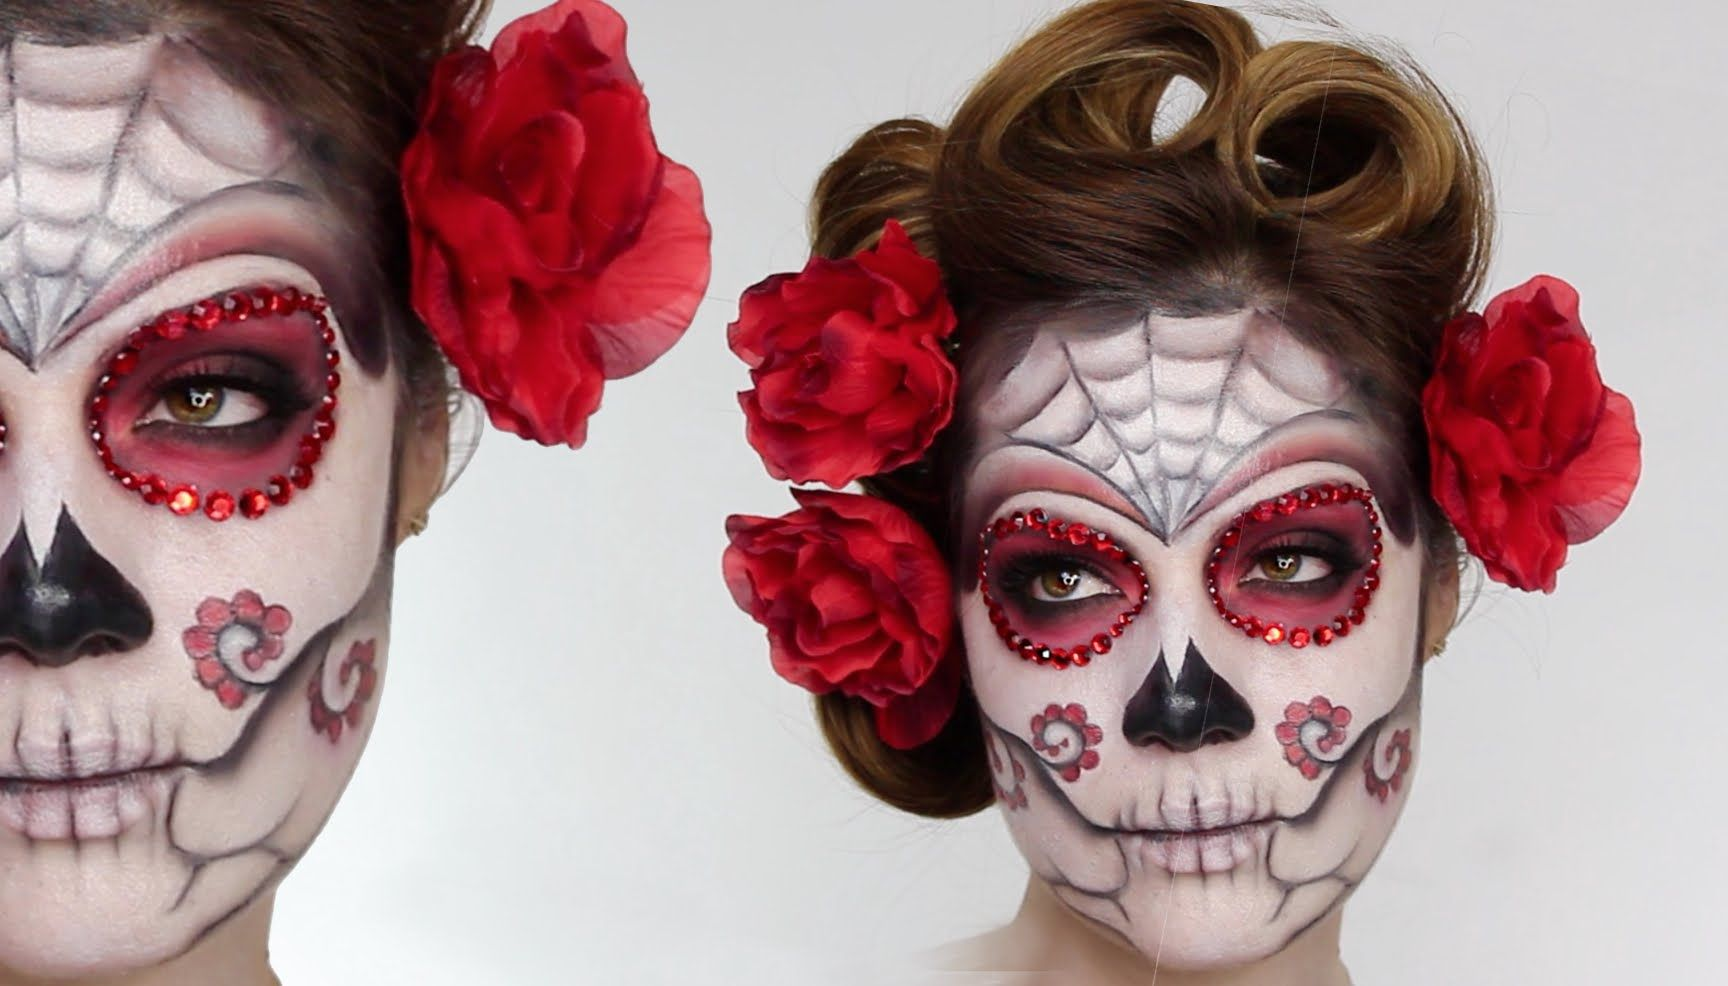 Here is my first Halloween makeup upload of 2014! An easy